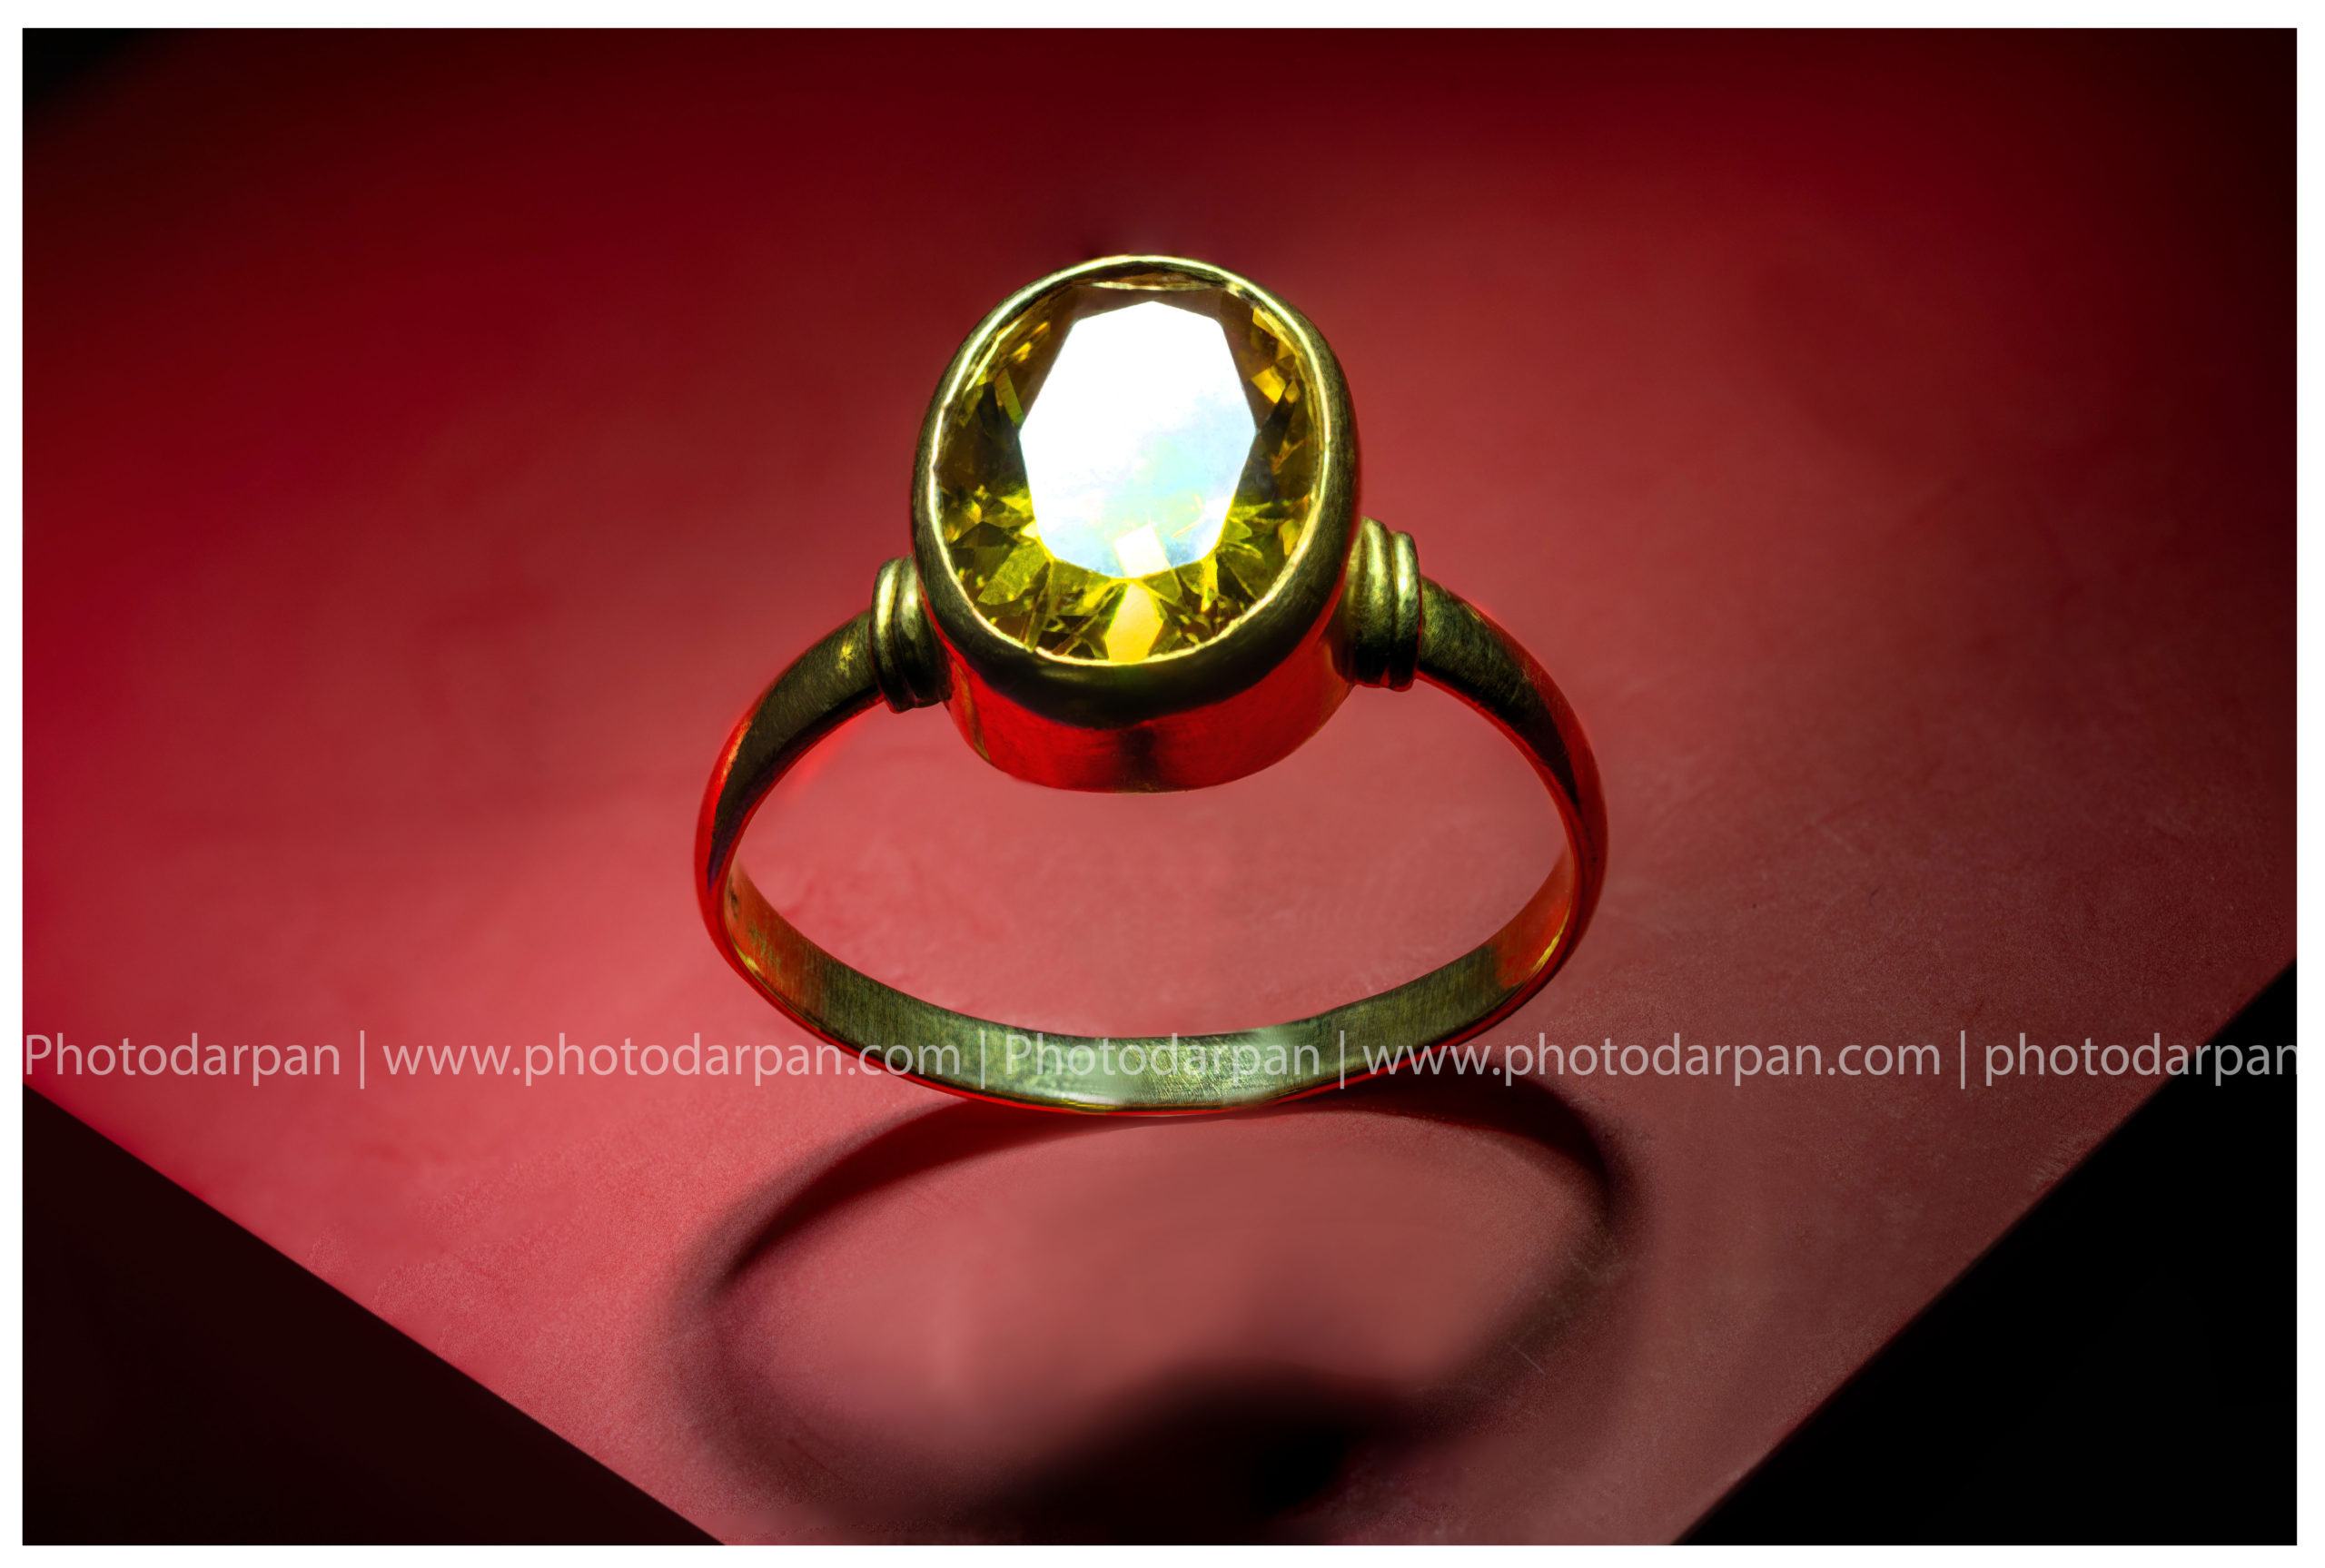 Jewelry photography by photodarpan